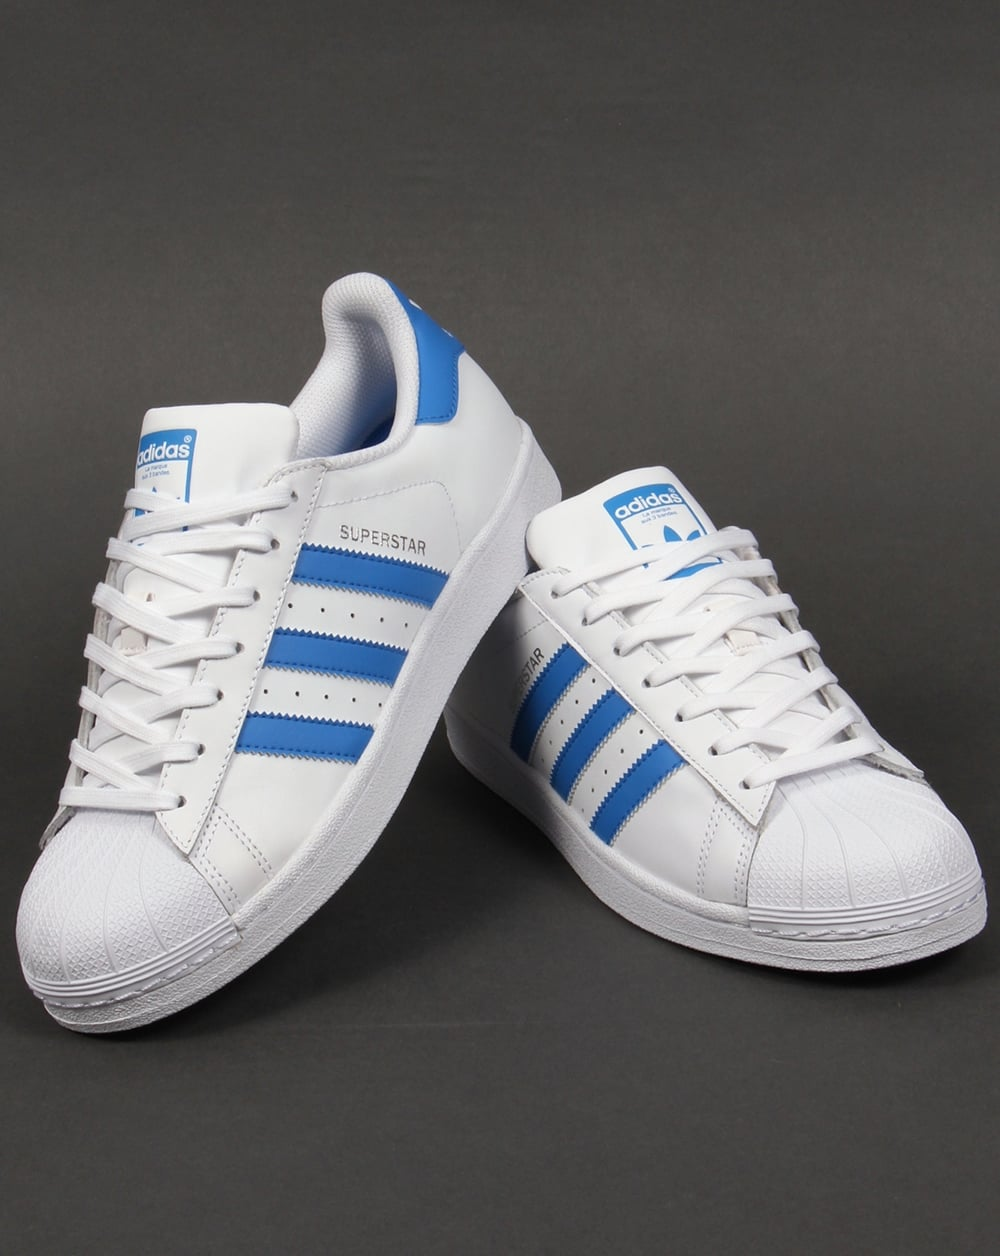 kids superstar / x Cheap Adidas Hong Kong Official Online Shop Cheap Adidas